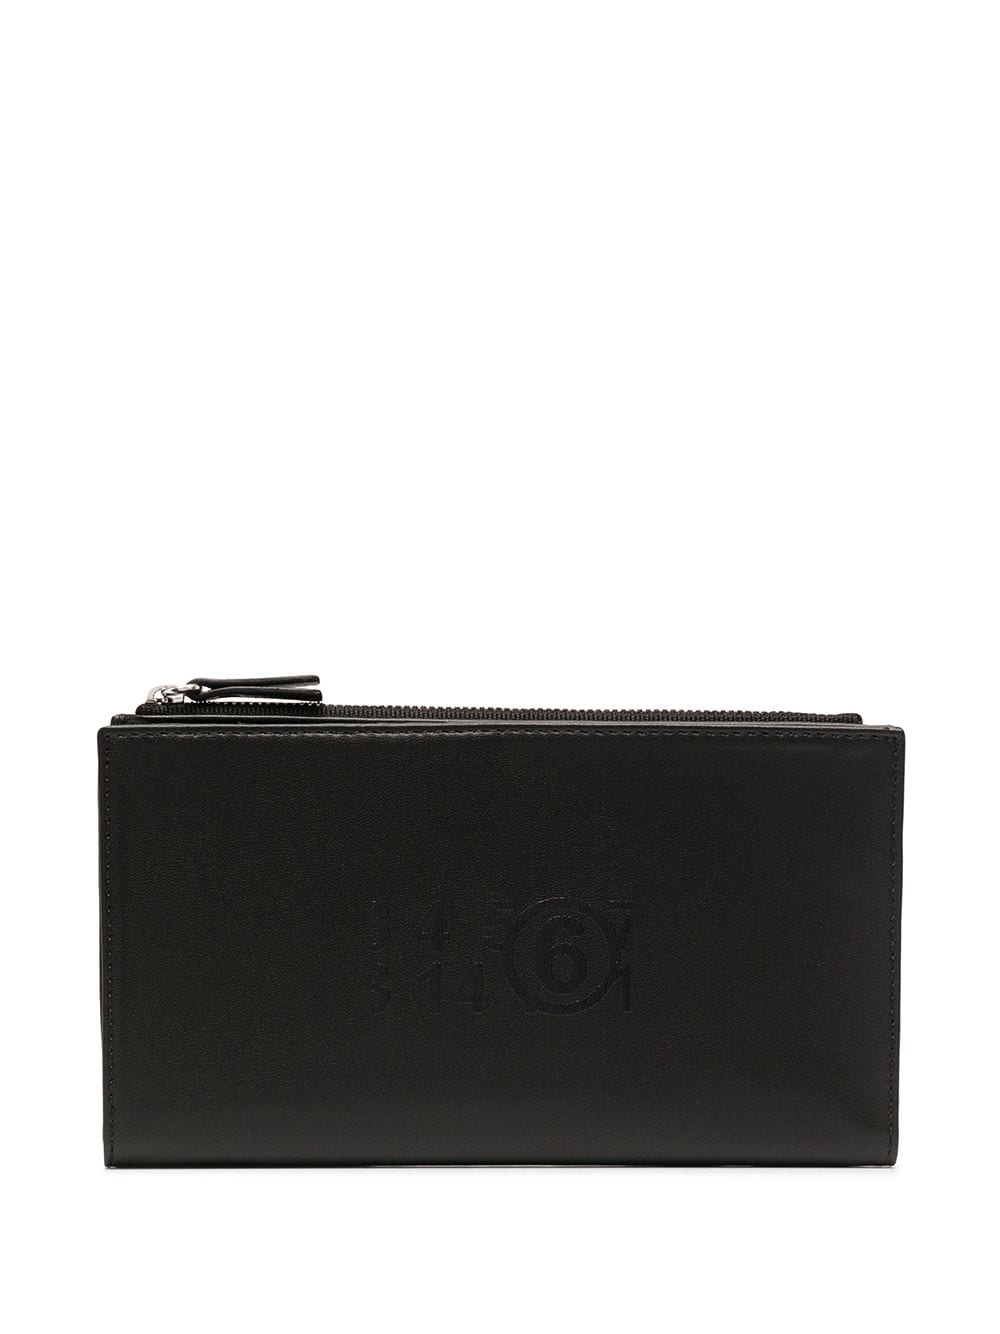 MM6 MAISON MARGIELA - Flip Flap Wallet Large - COMING SOON